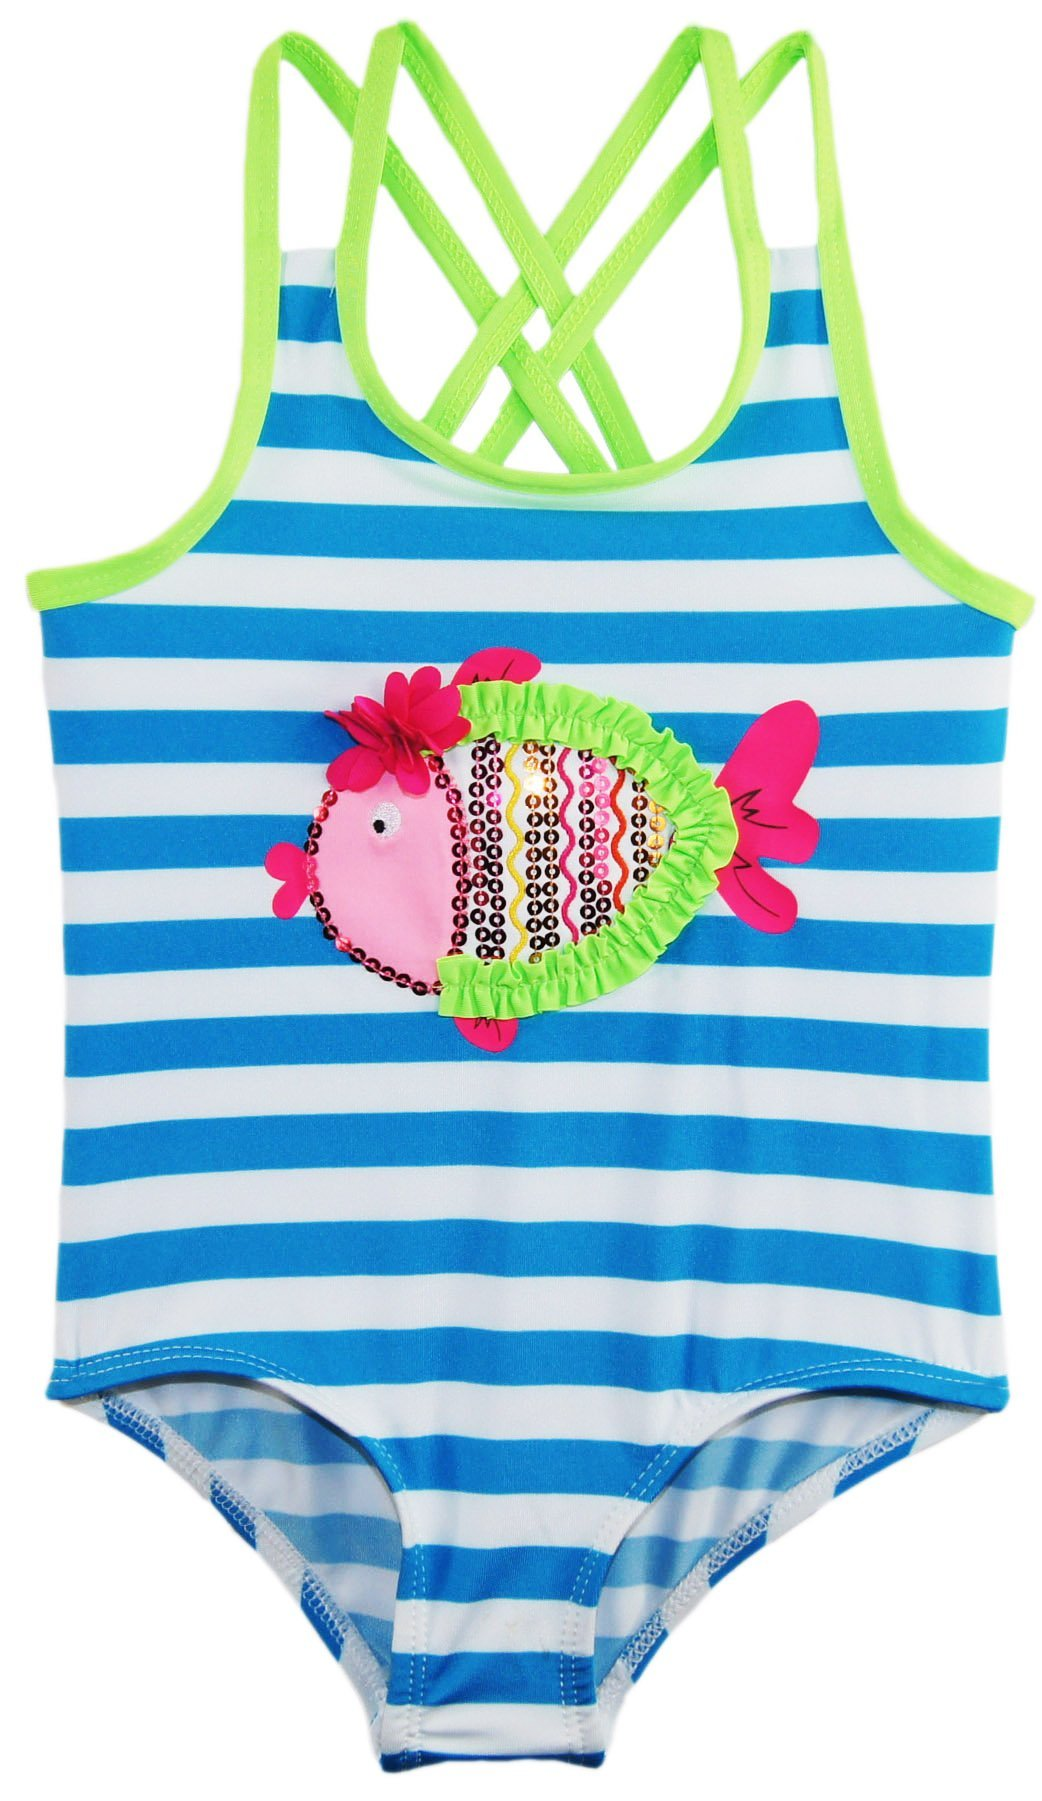 Wippette Baby Stripes with Fish Applique Swimsuit, Atomic Blue, 24 Months by Wippette (Image #2)